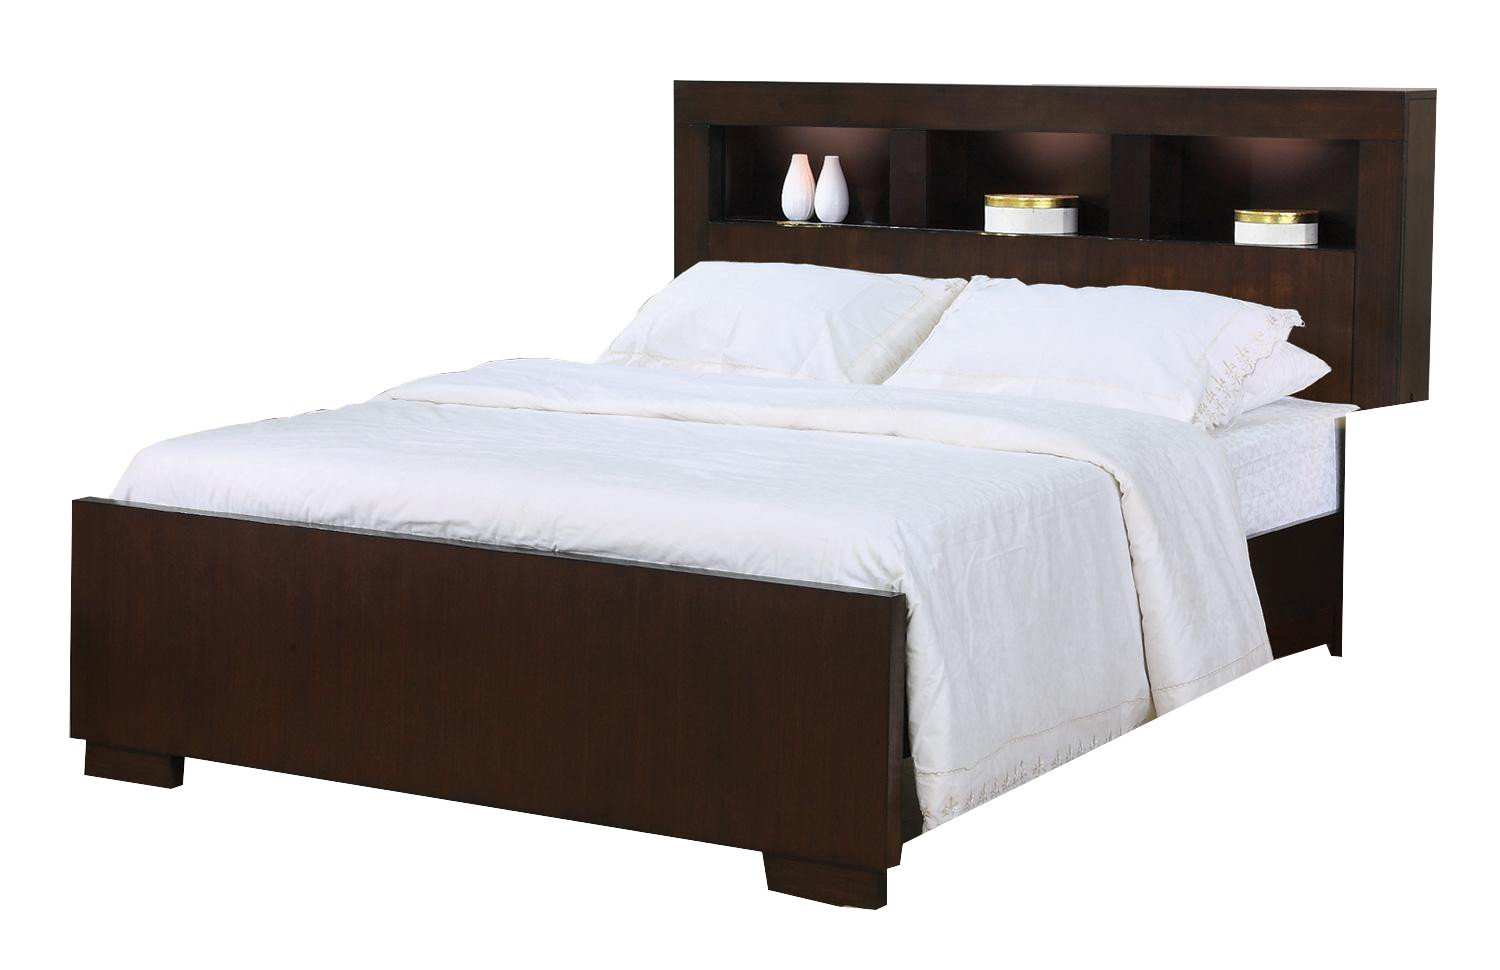 Amazon.com: Coaster Jessica King Bed: Kitchen & Dining